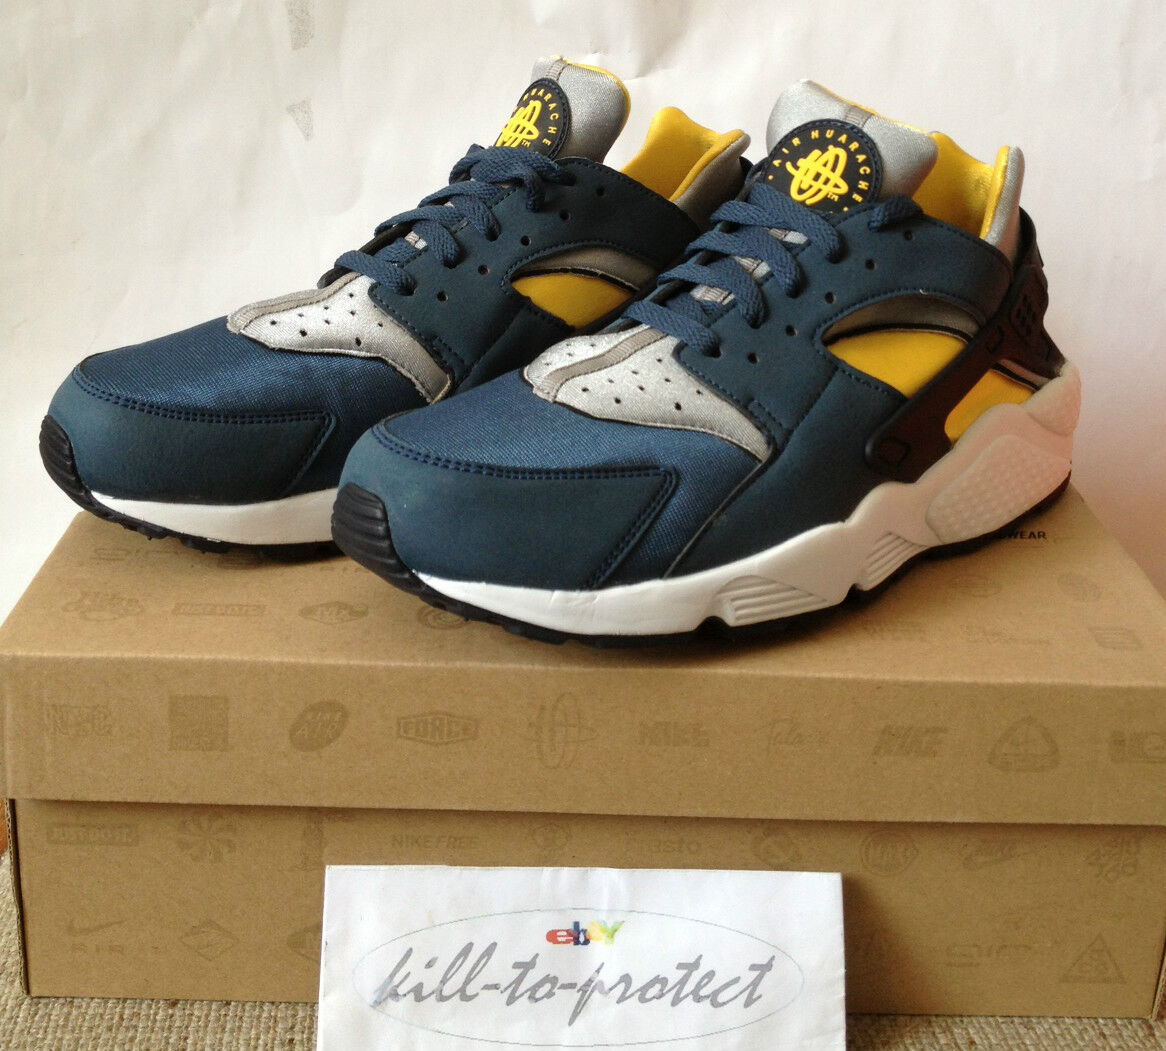 NIKE AIR HUARACHE LE US UK 7 8 9 10 11 12 13 BLUE YELLOW Silver 318429-400 2013